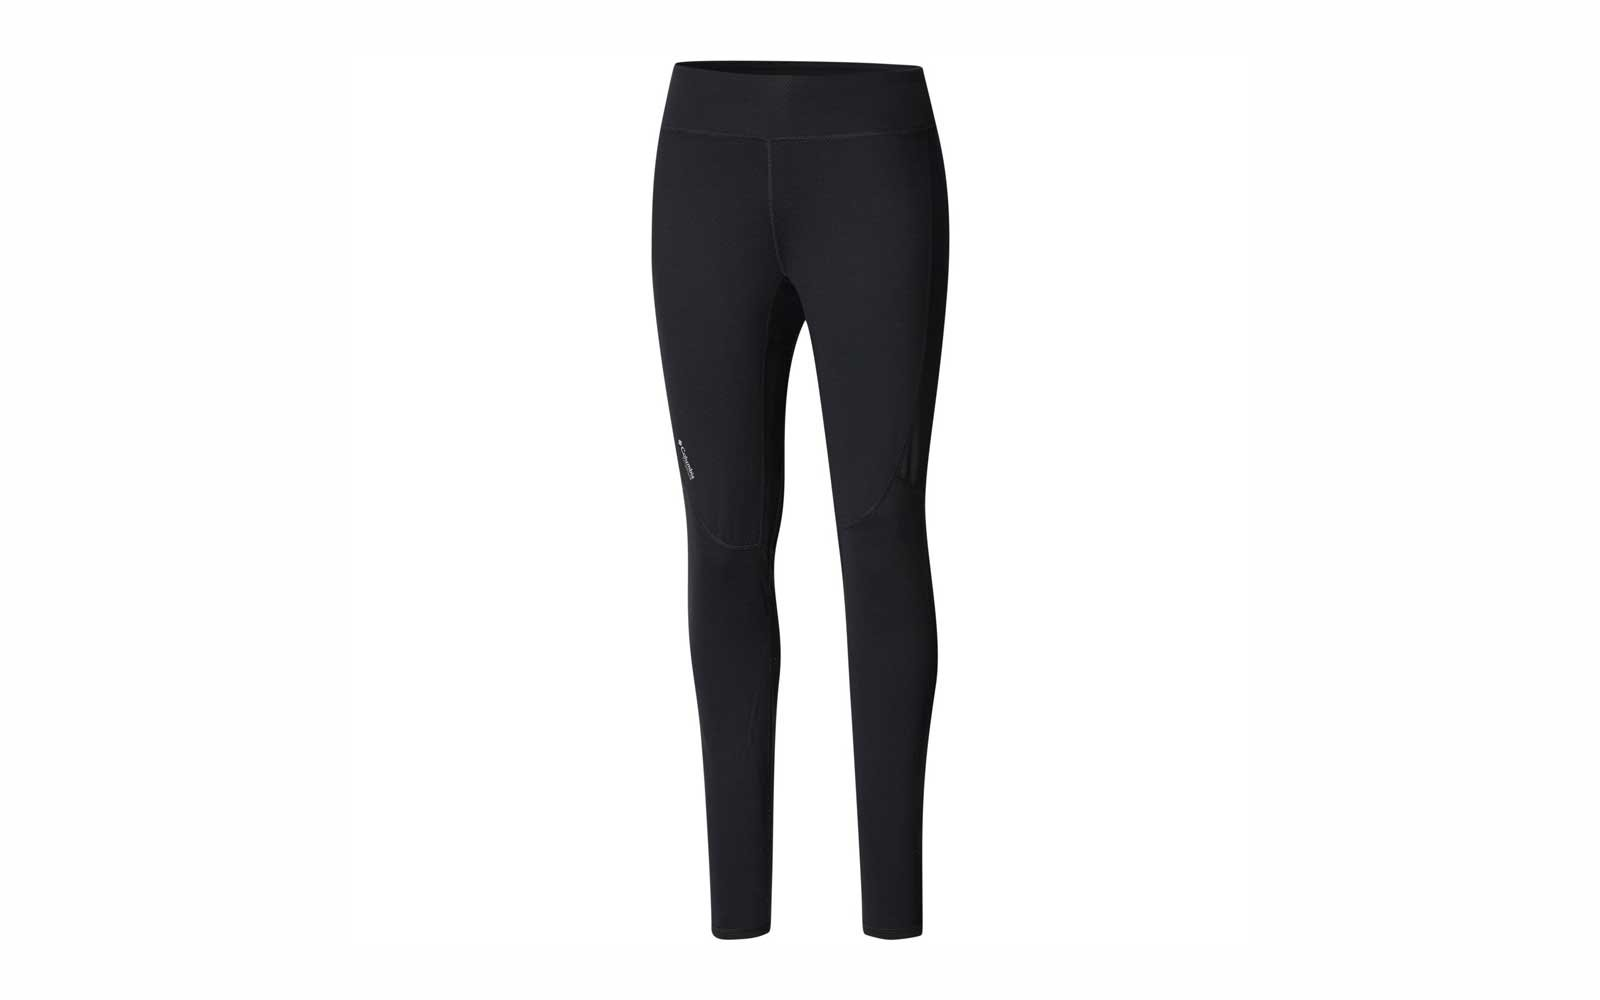 Columbia Women's Omni-Heat 3D Knit Tight